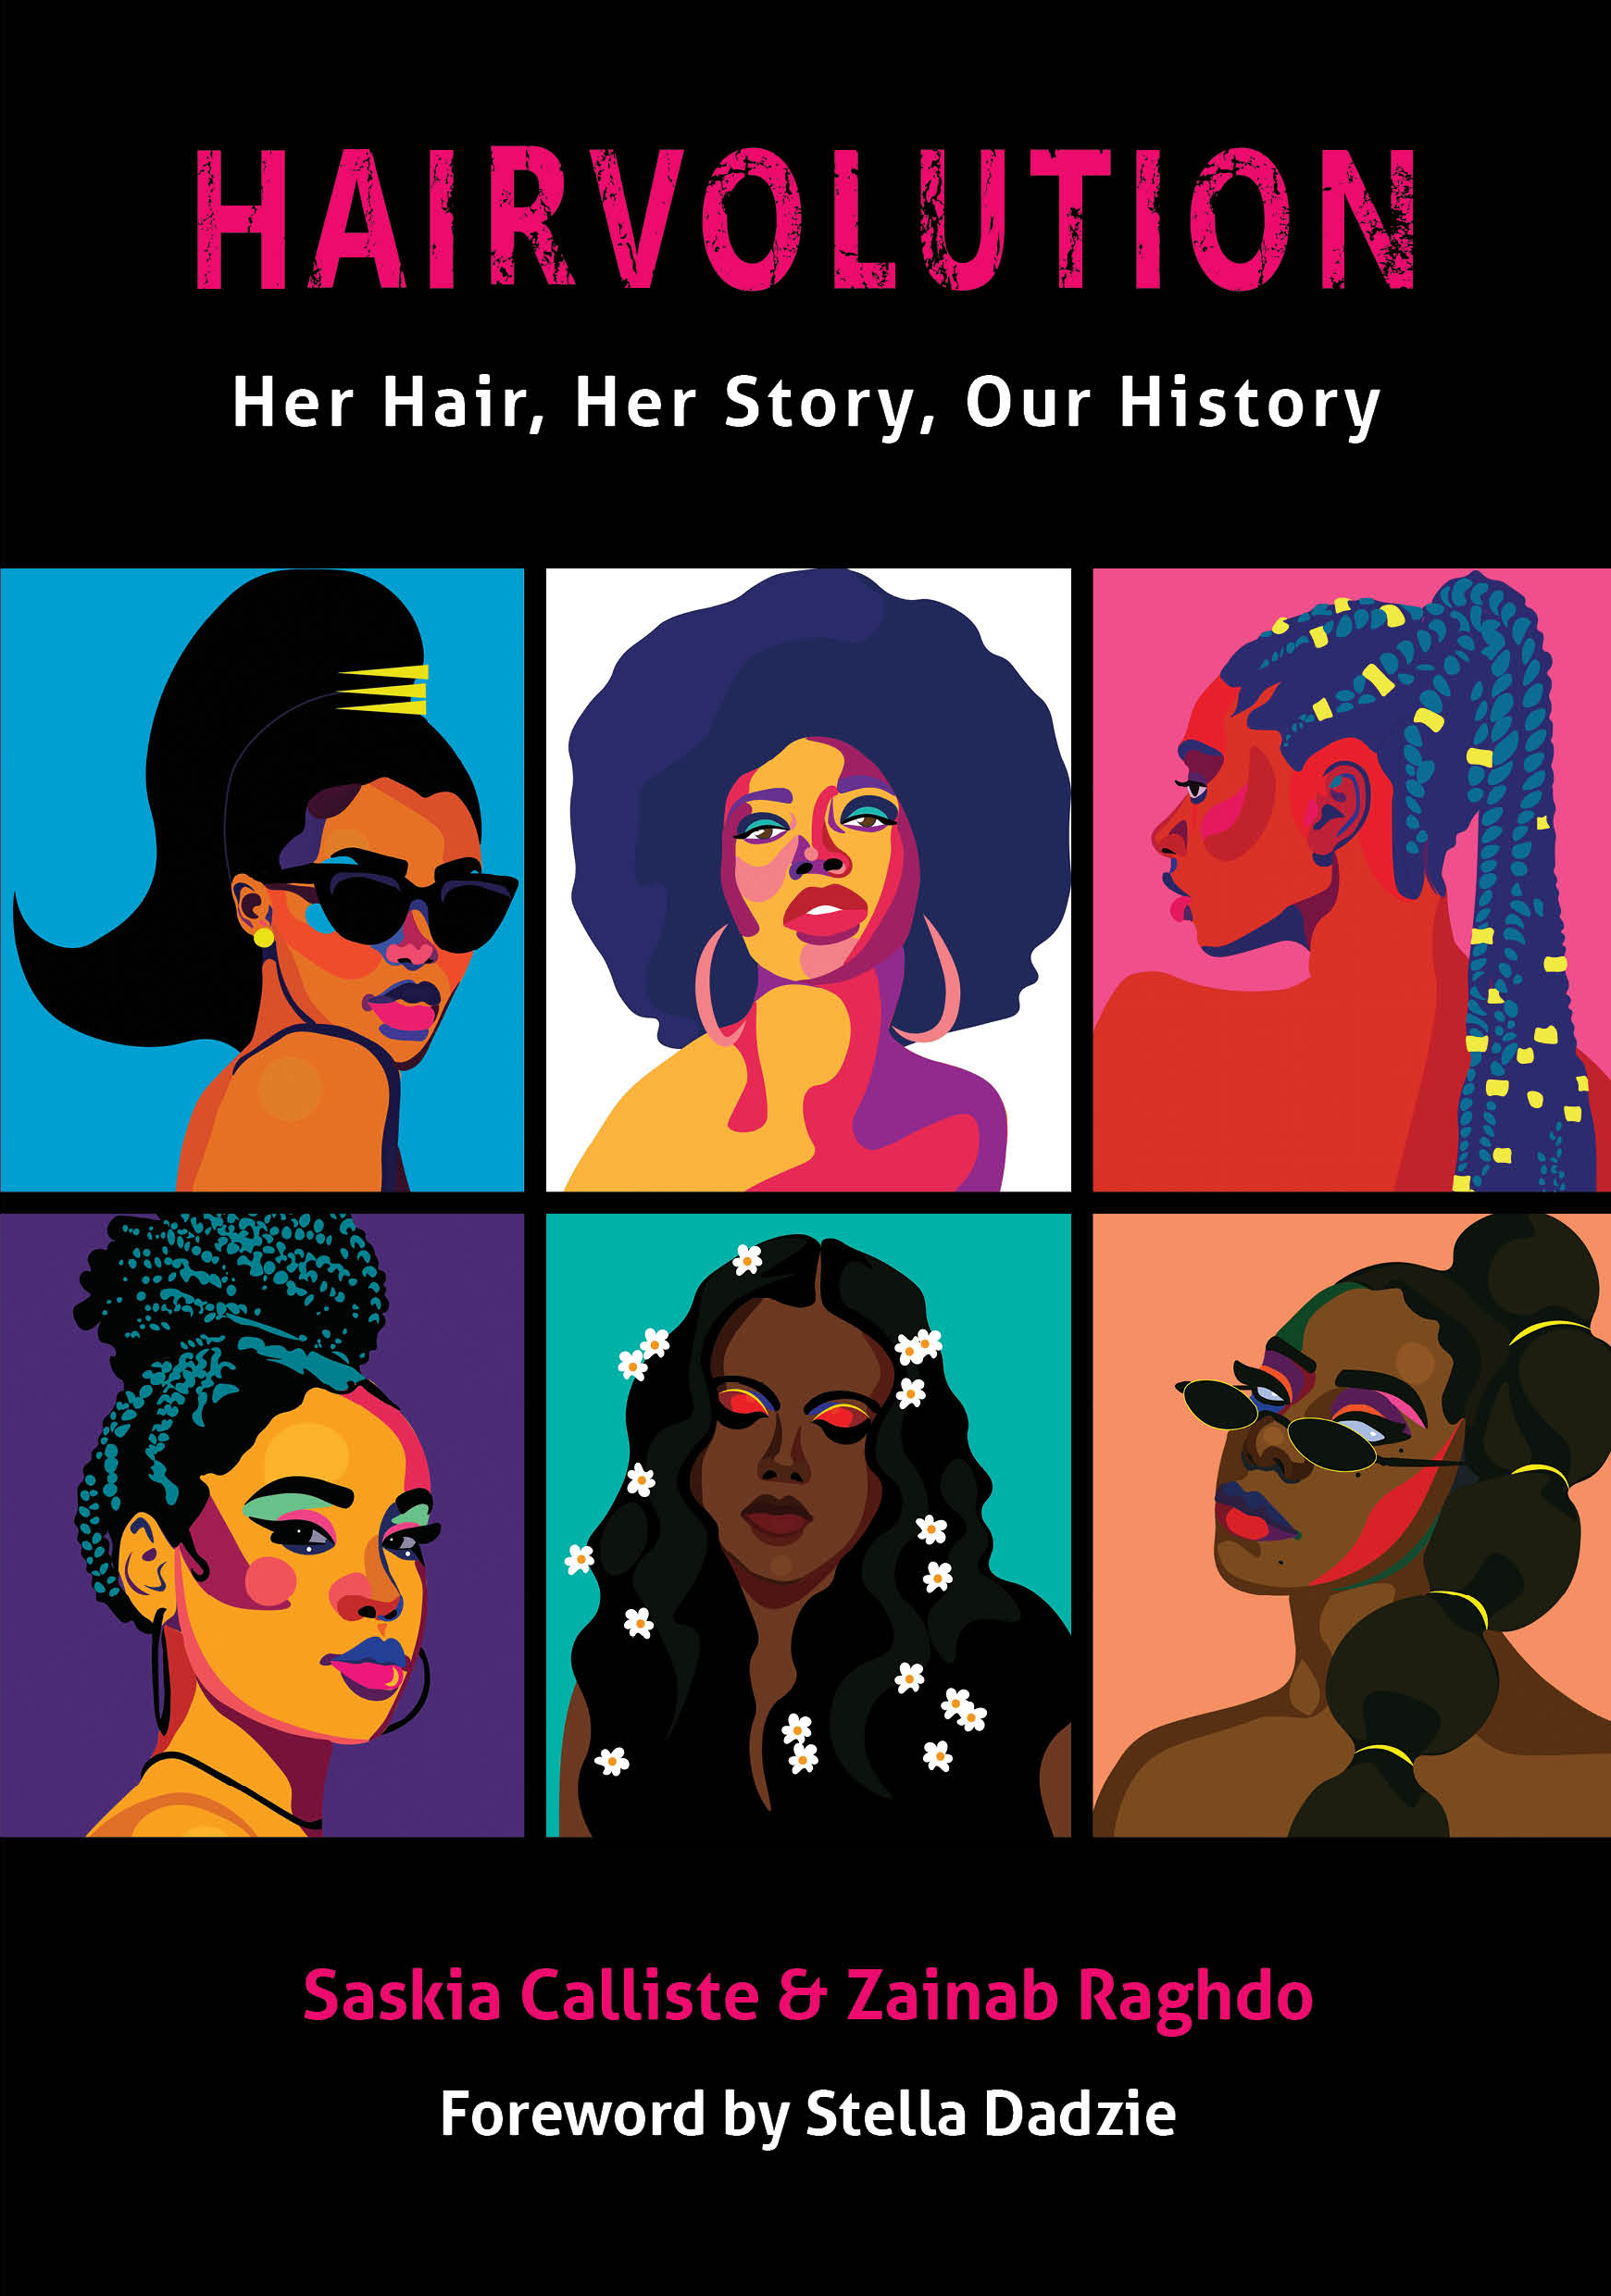 Hairvolution book launches on World Afro Day